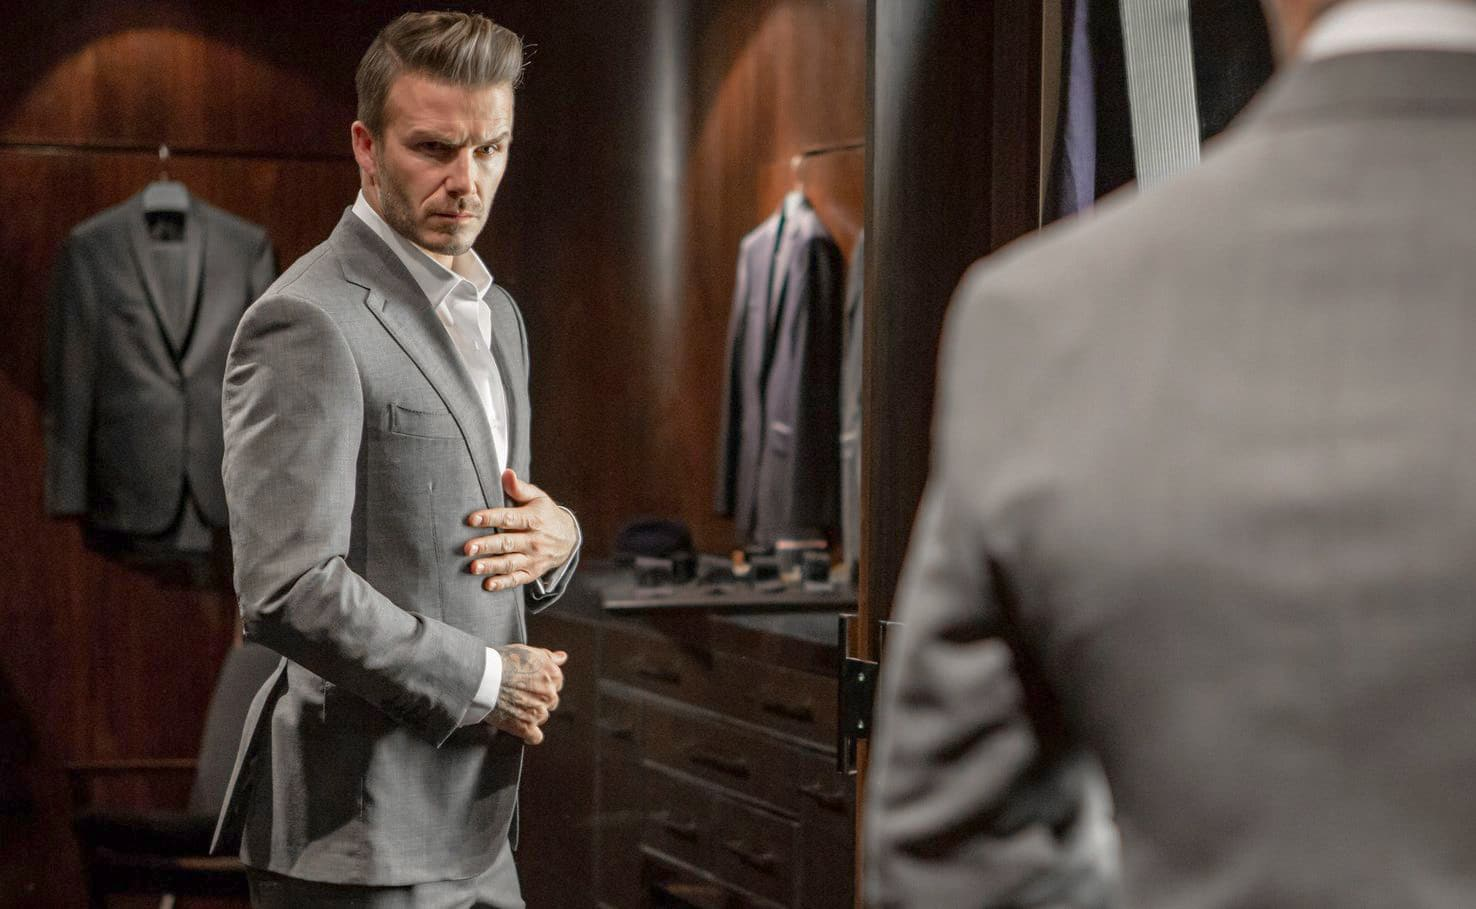 How to Wear a Suit: Complete Guide